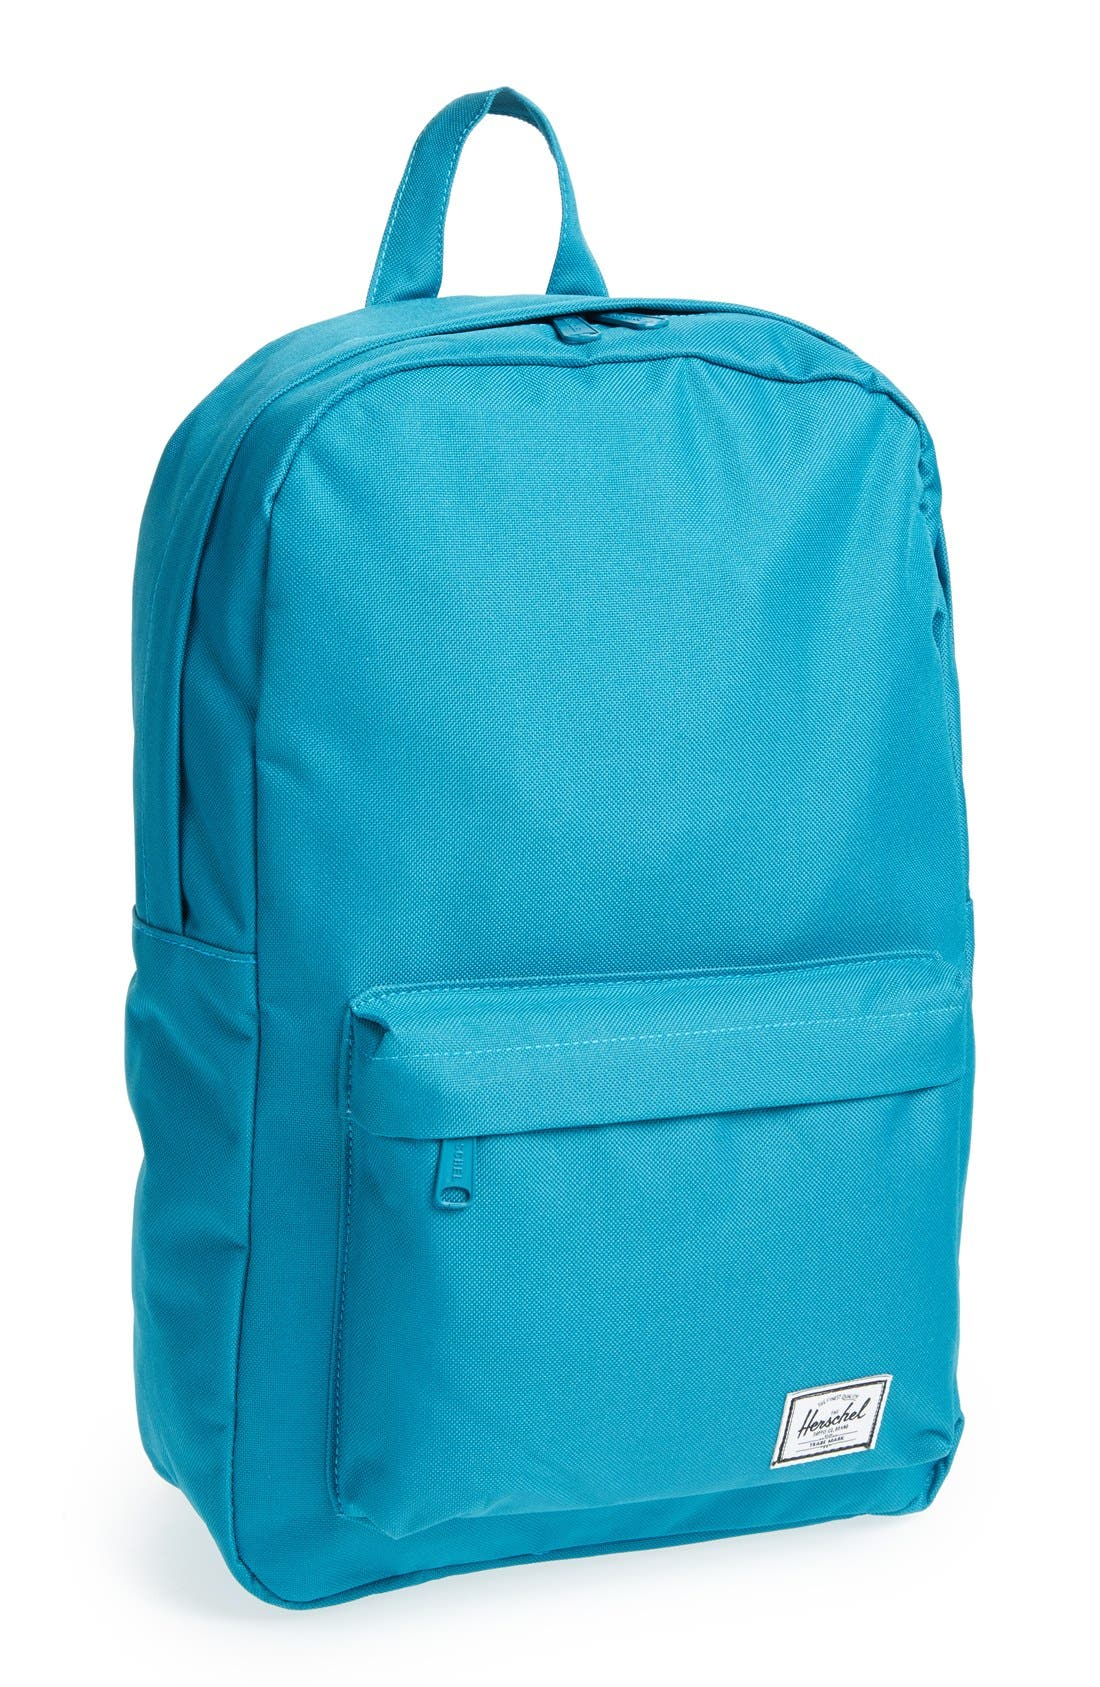 Main Image - Herschel Supply Co. 'Classic Mid-Volume' Backpack